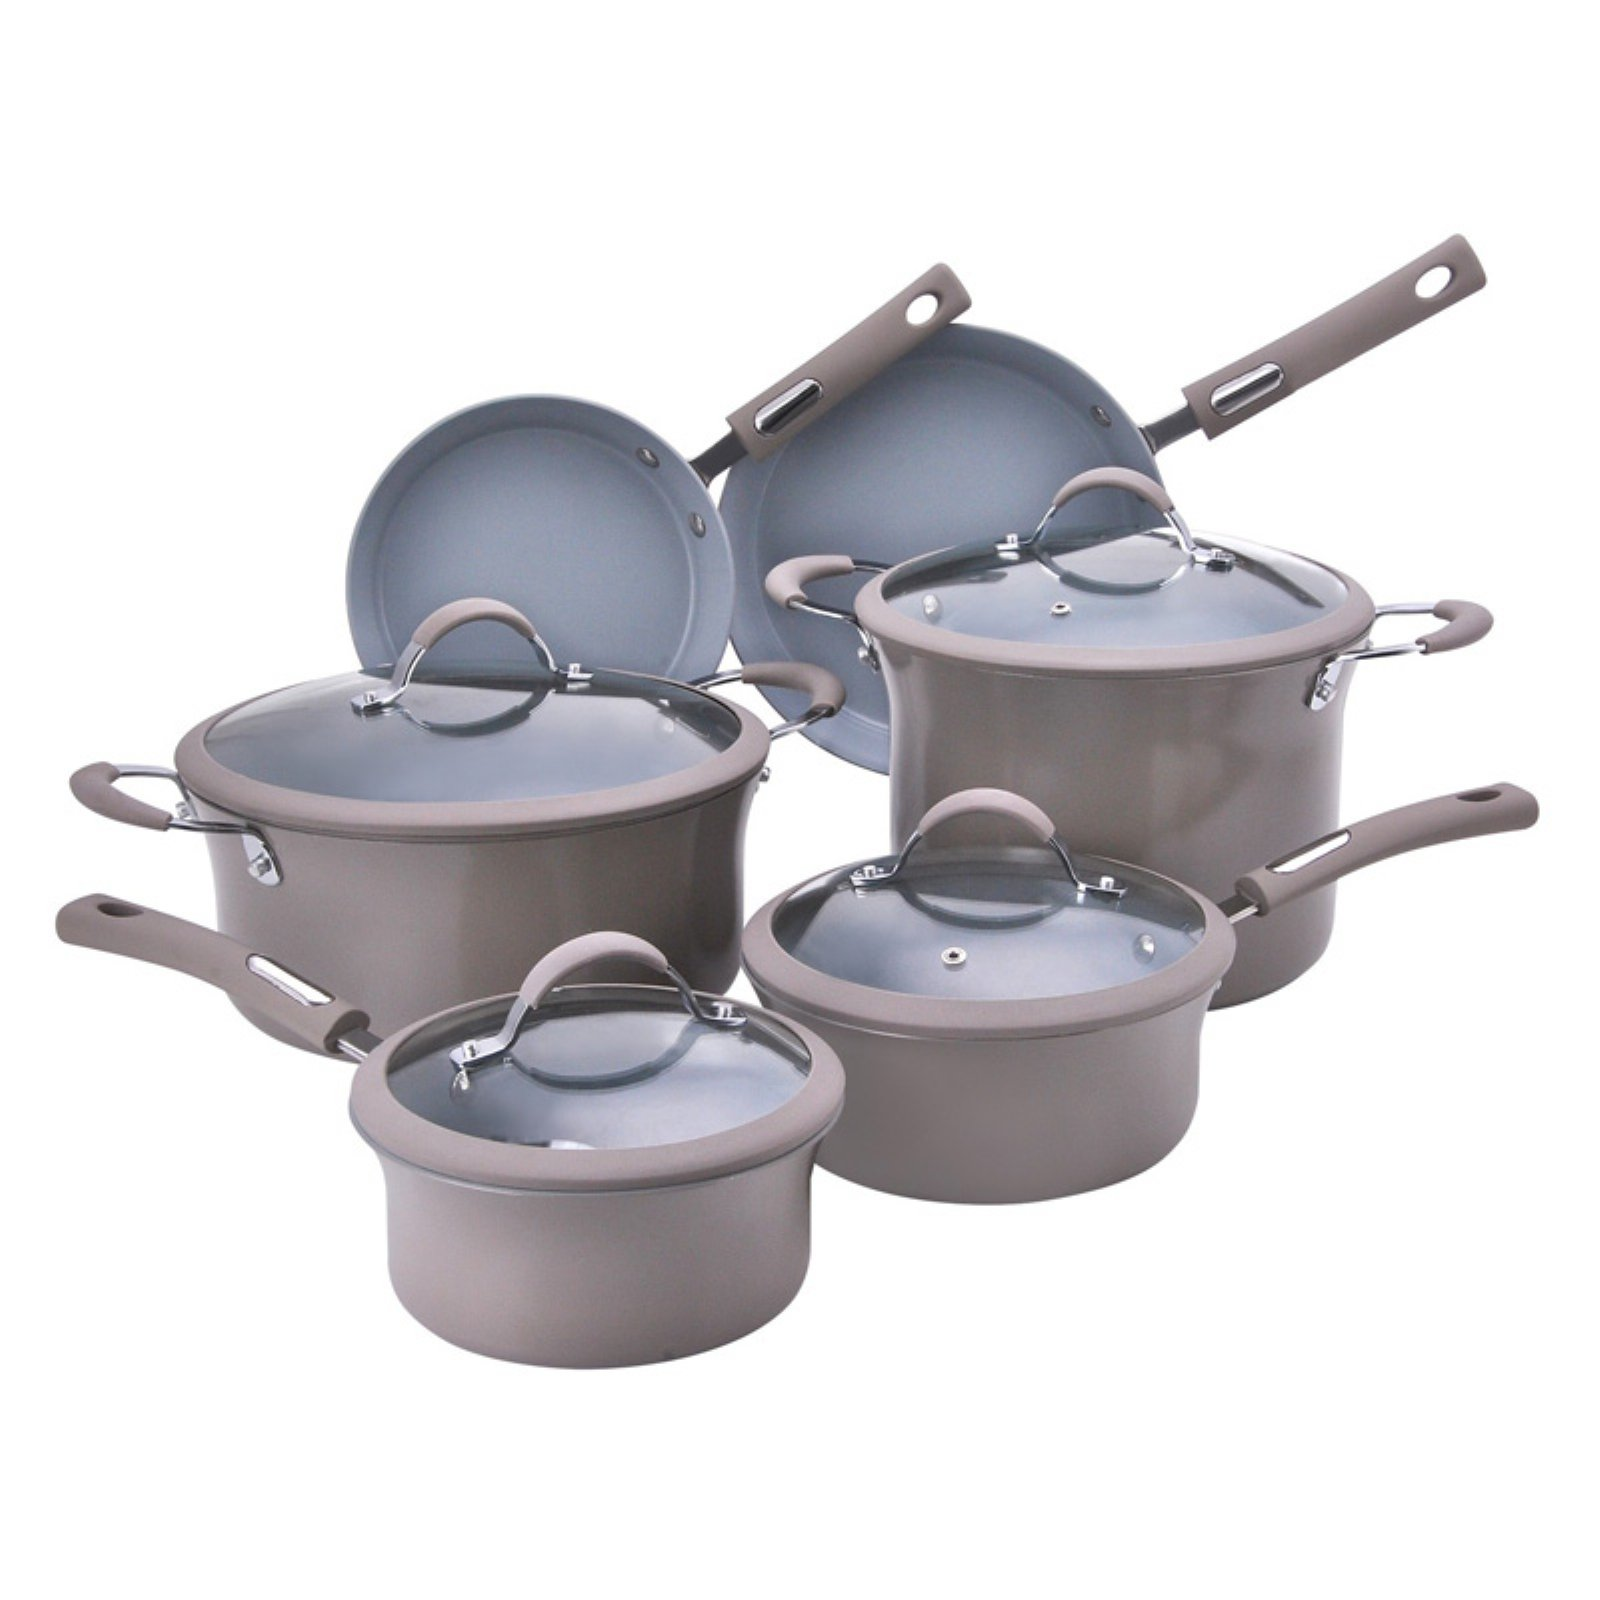 Hamilton Beach 10pc Aluminum Cookware Set, Champagne by Supplier Generic